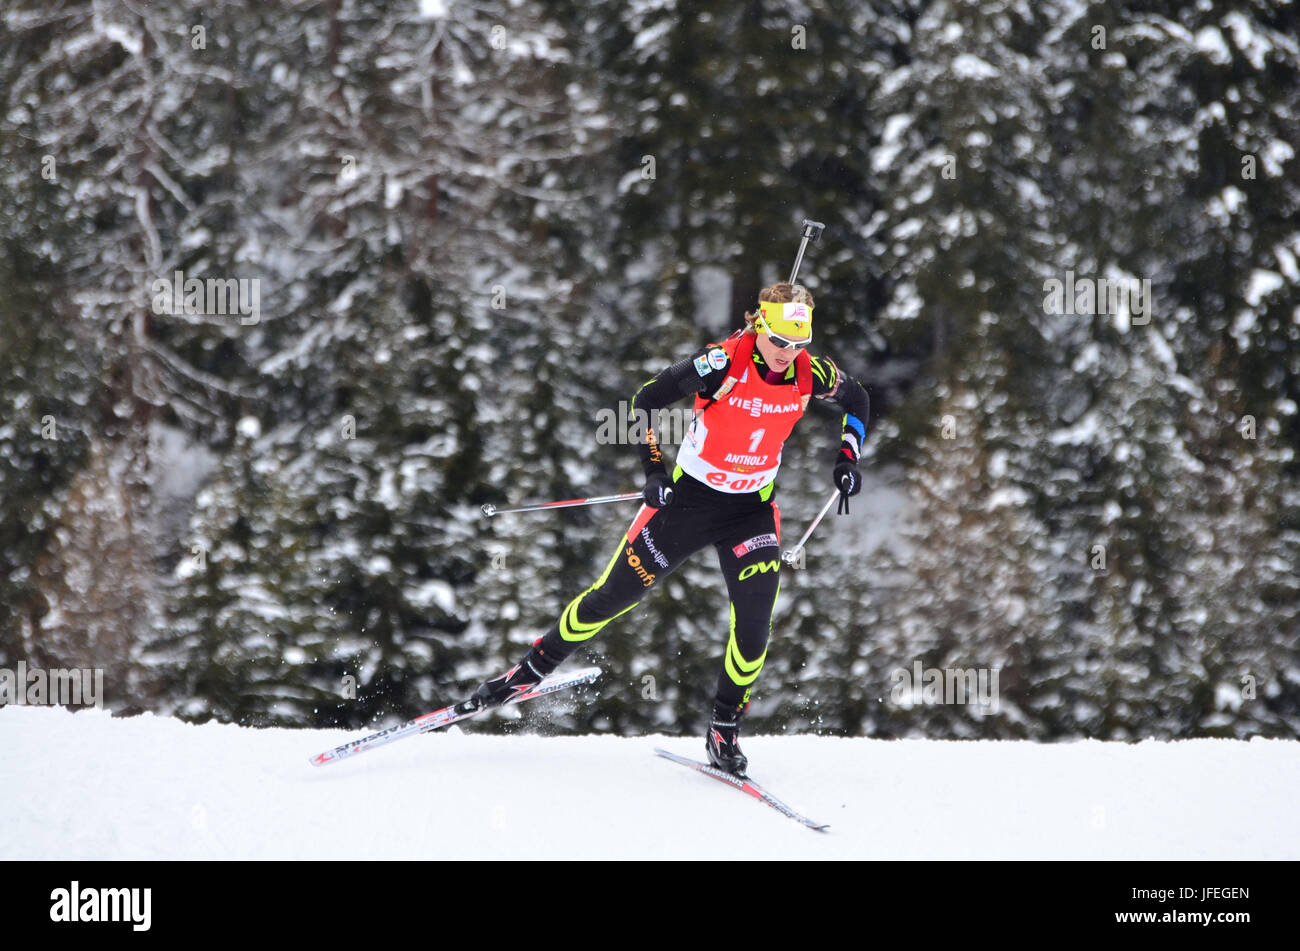 Anais photos anais images alamy - Coupe du monde de ski de fond ...